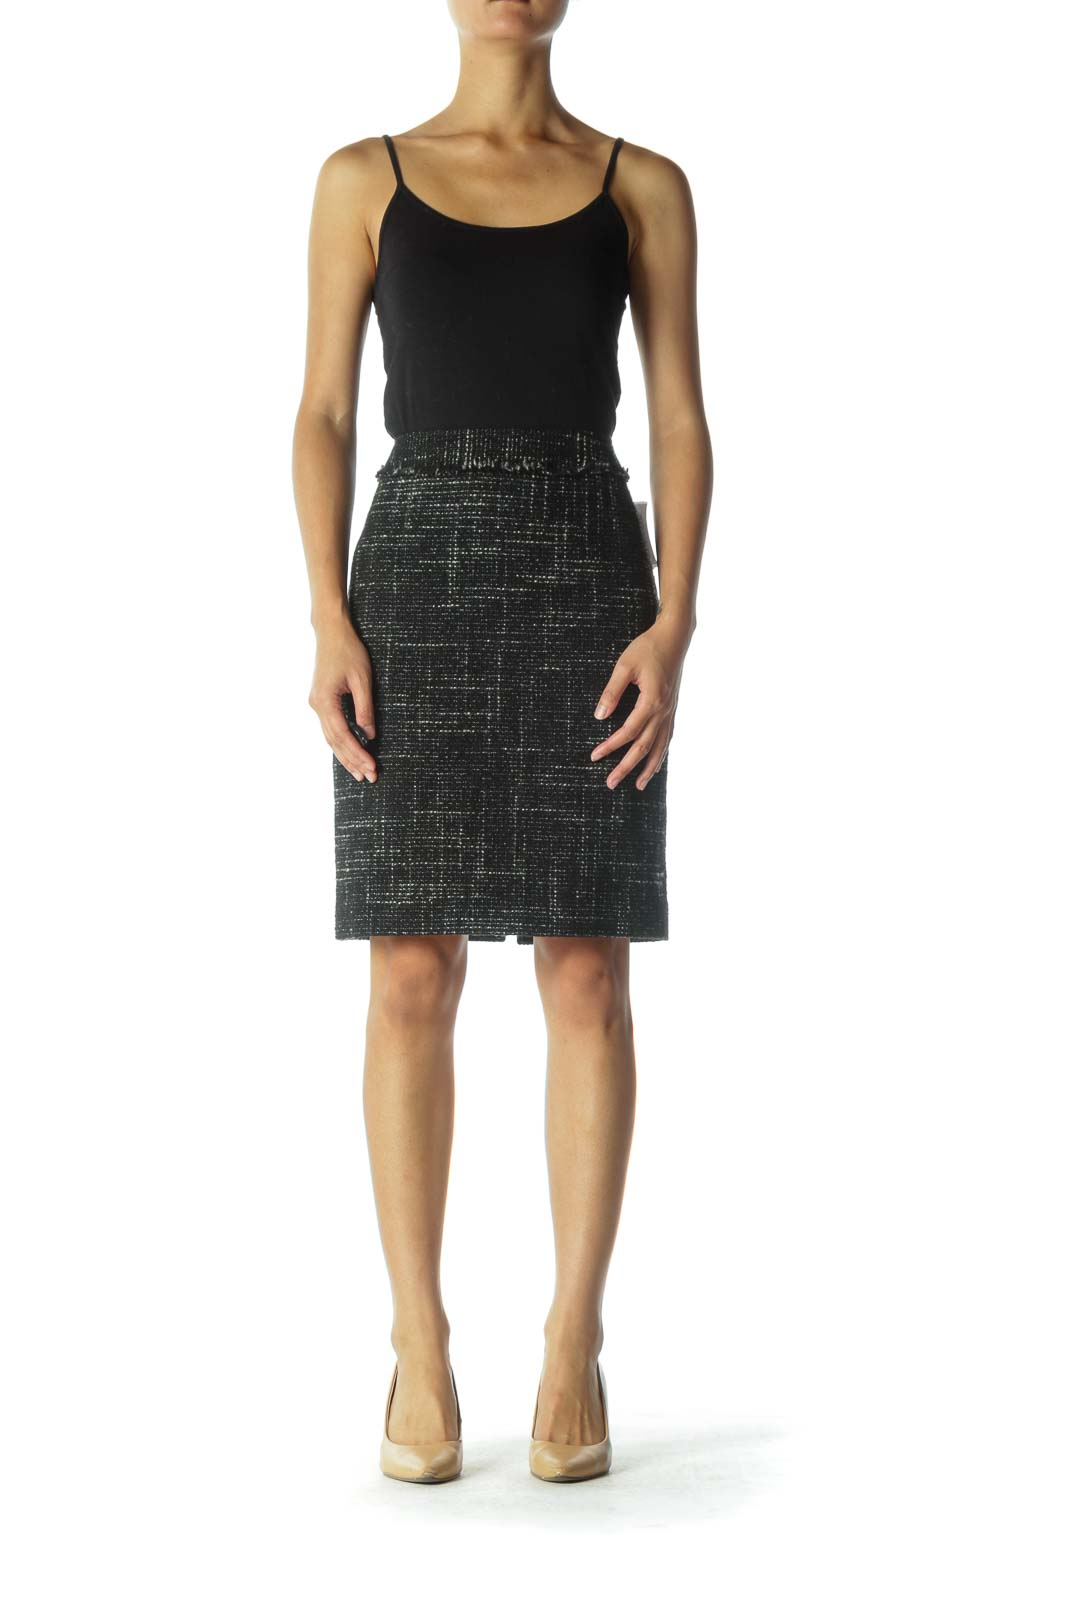 Black and Gray Knit Pencil Skirt